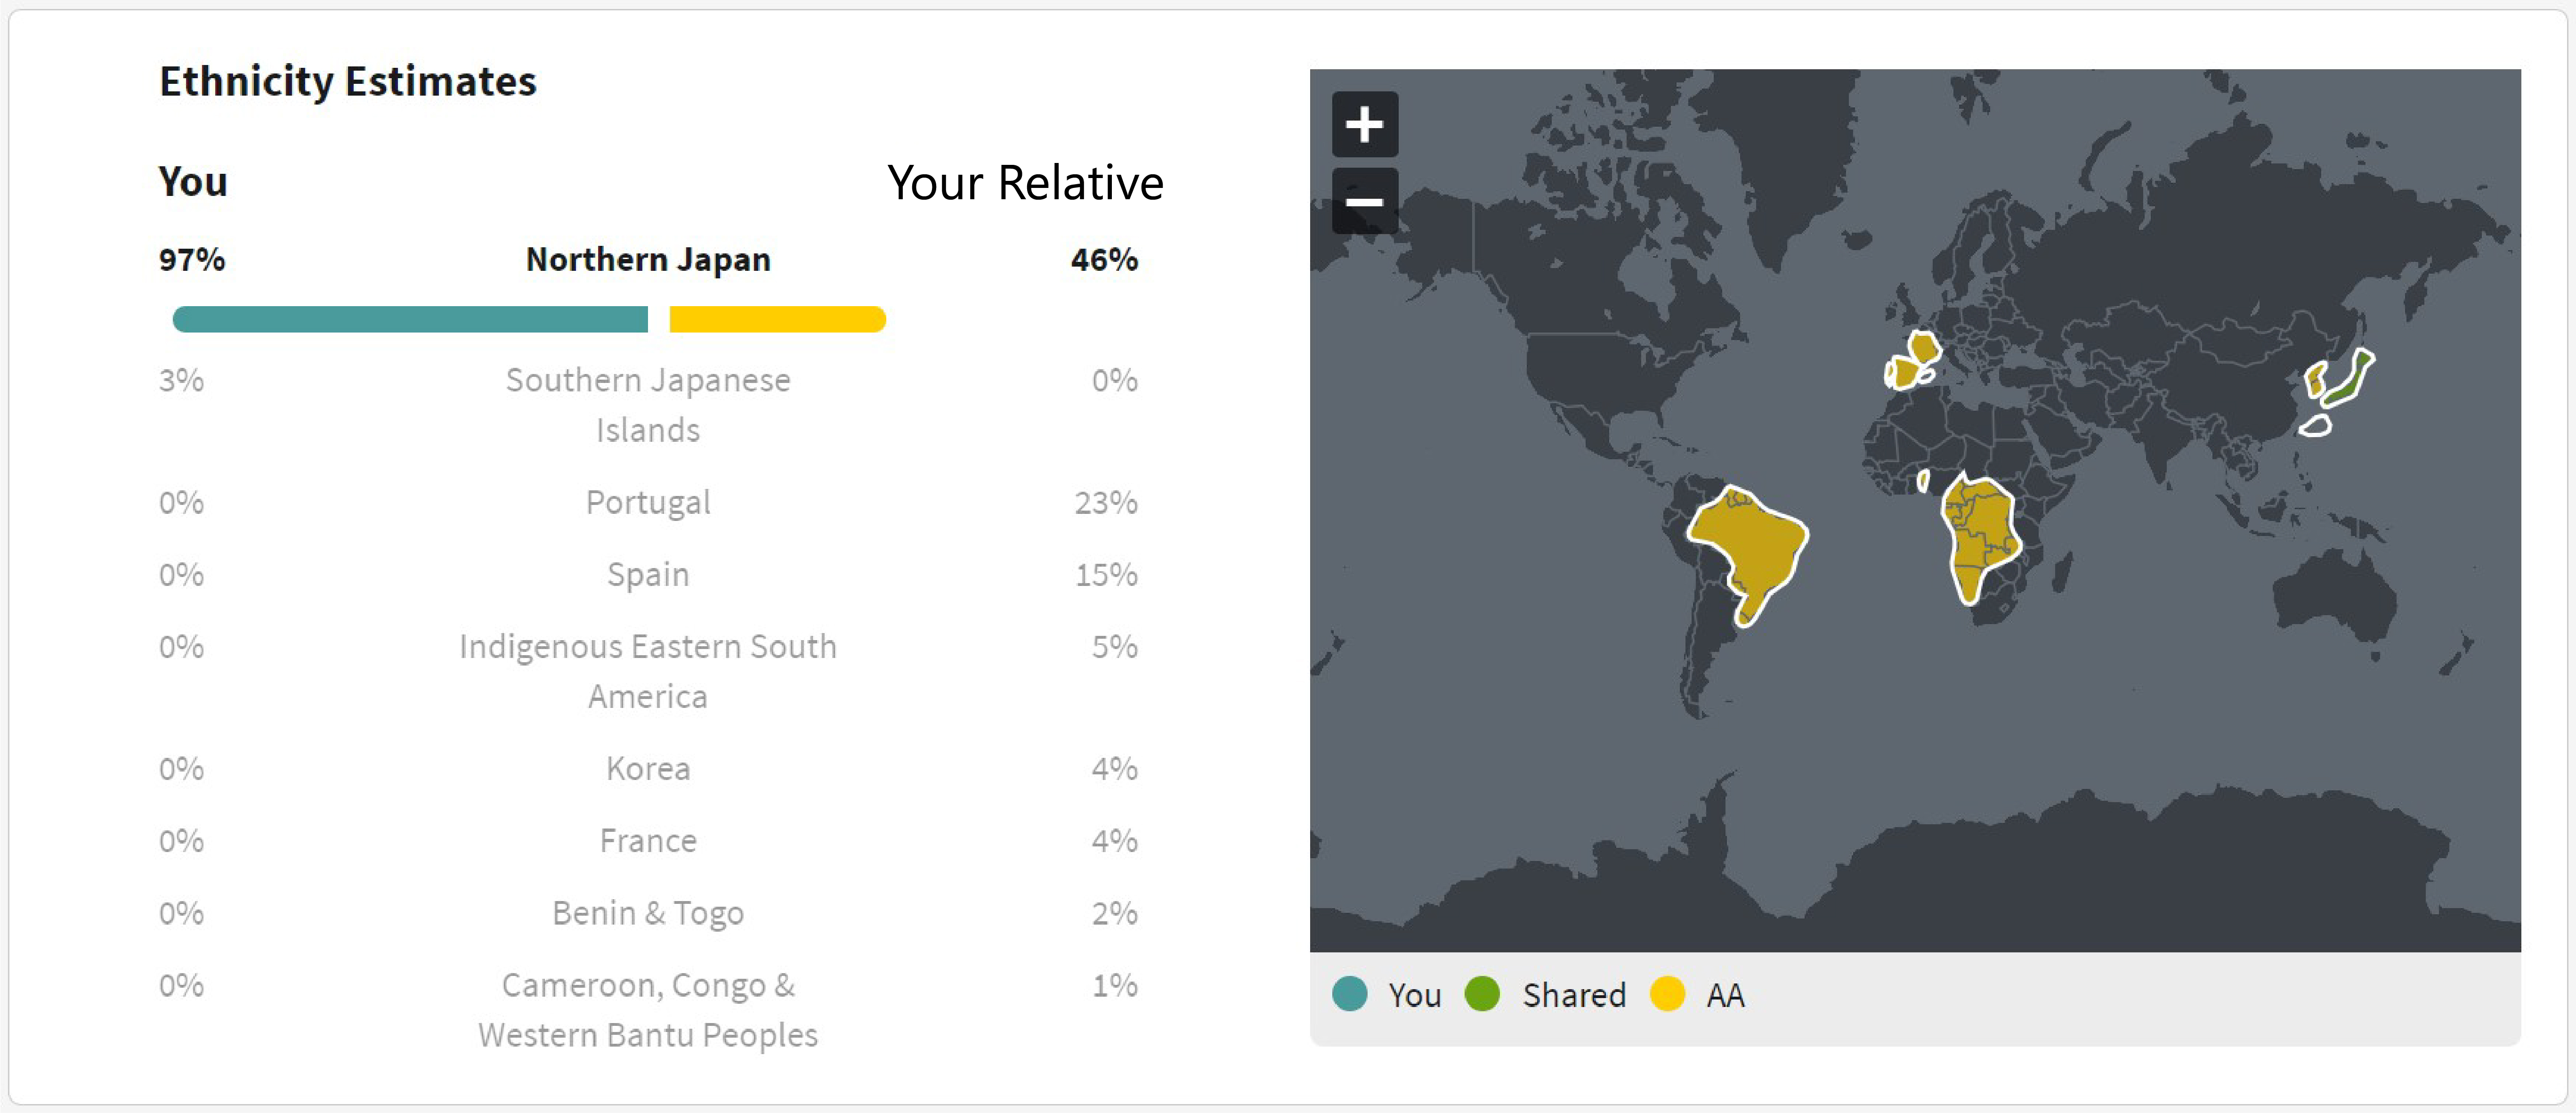 Compare your ethnicity estimate to one of your matches to see where you are the same and where you are different.